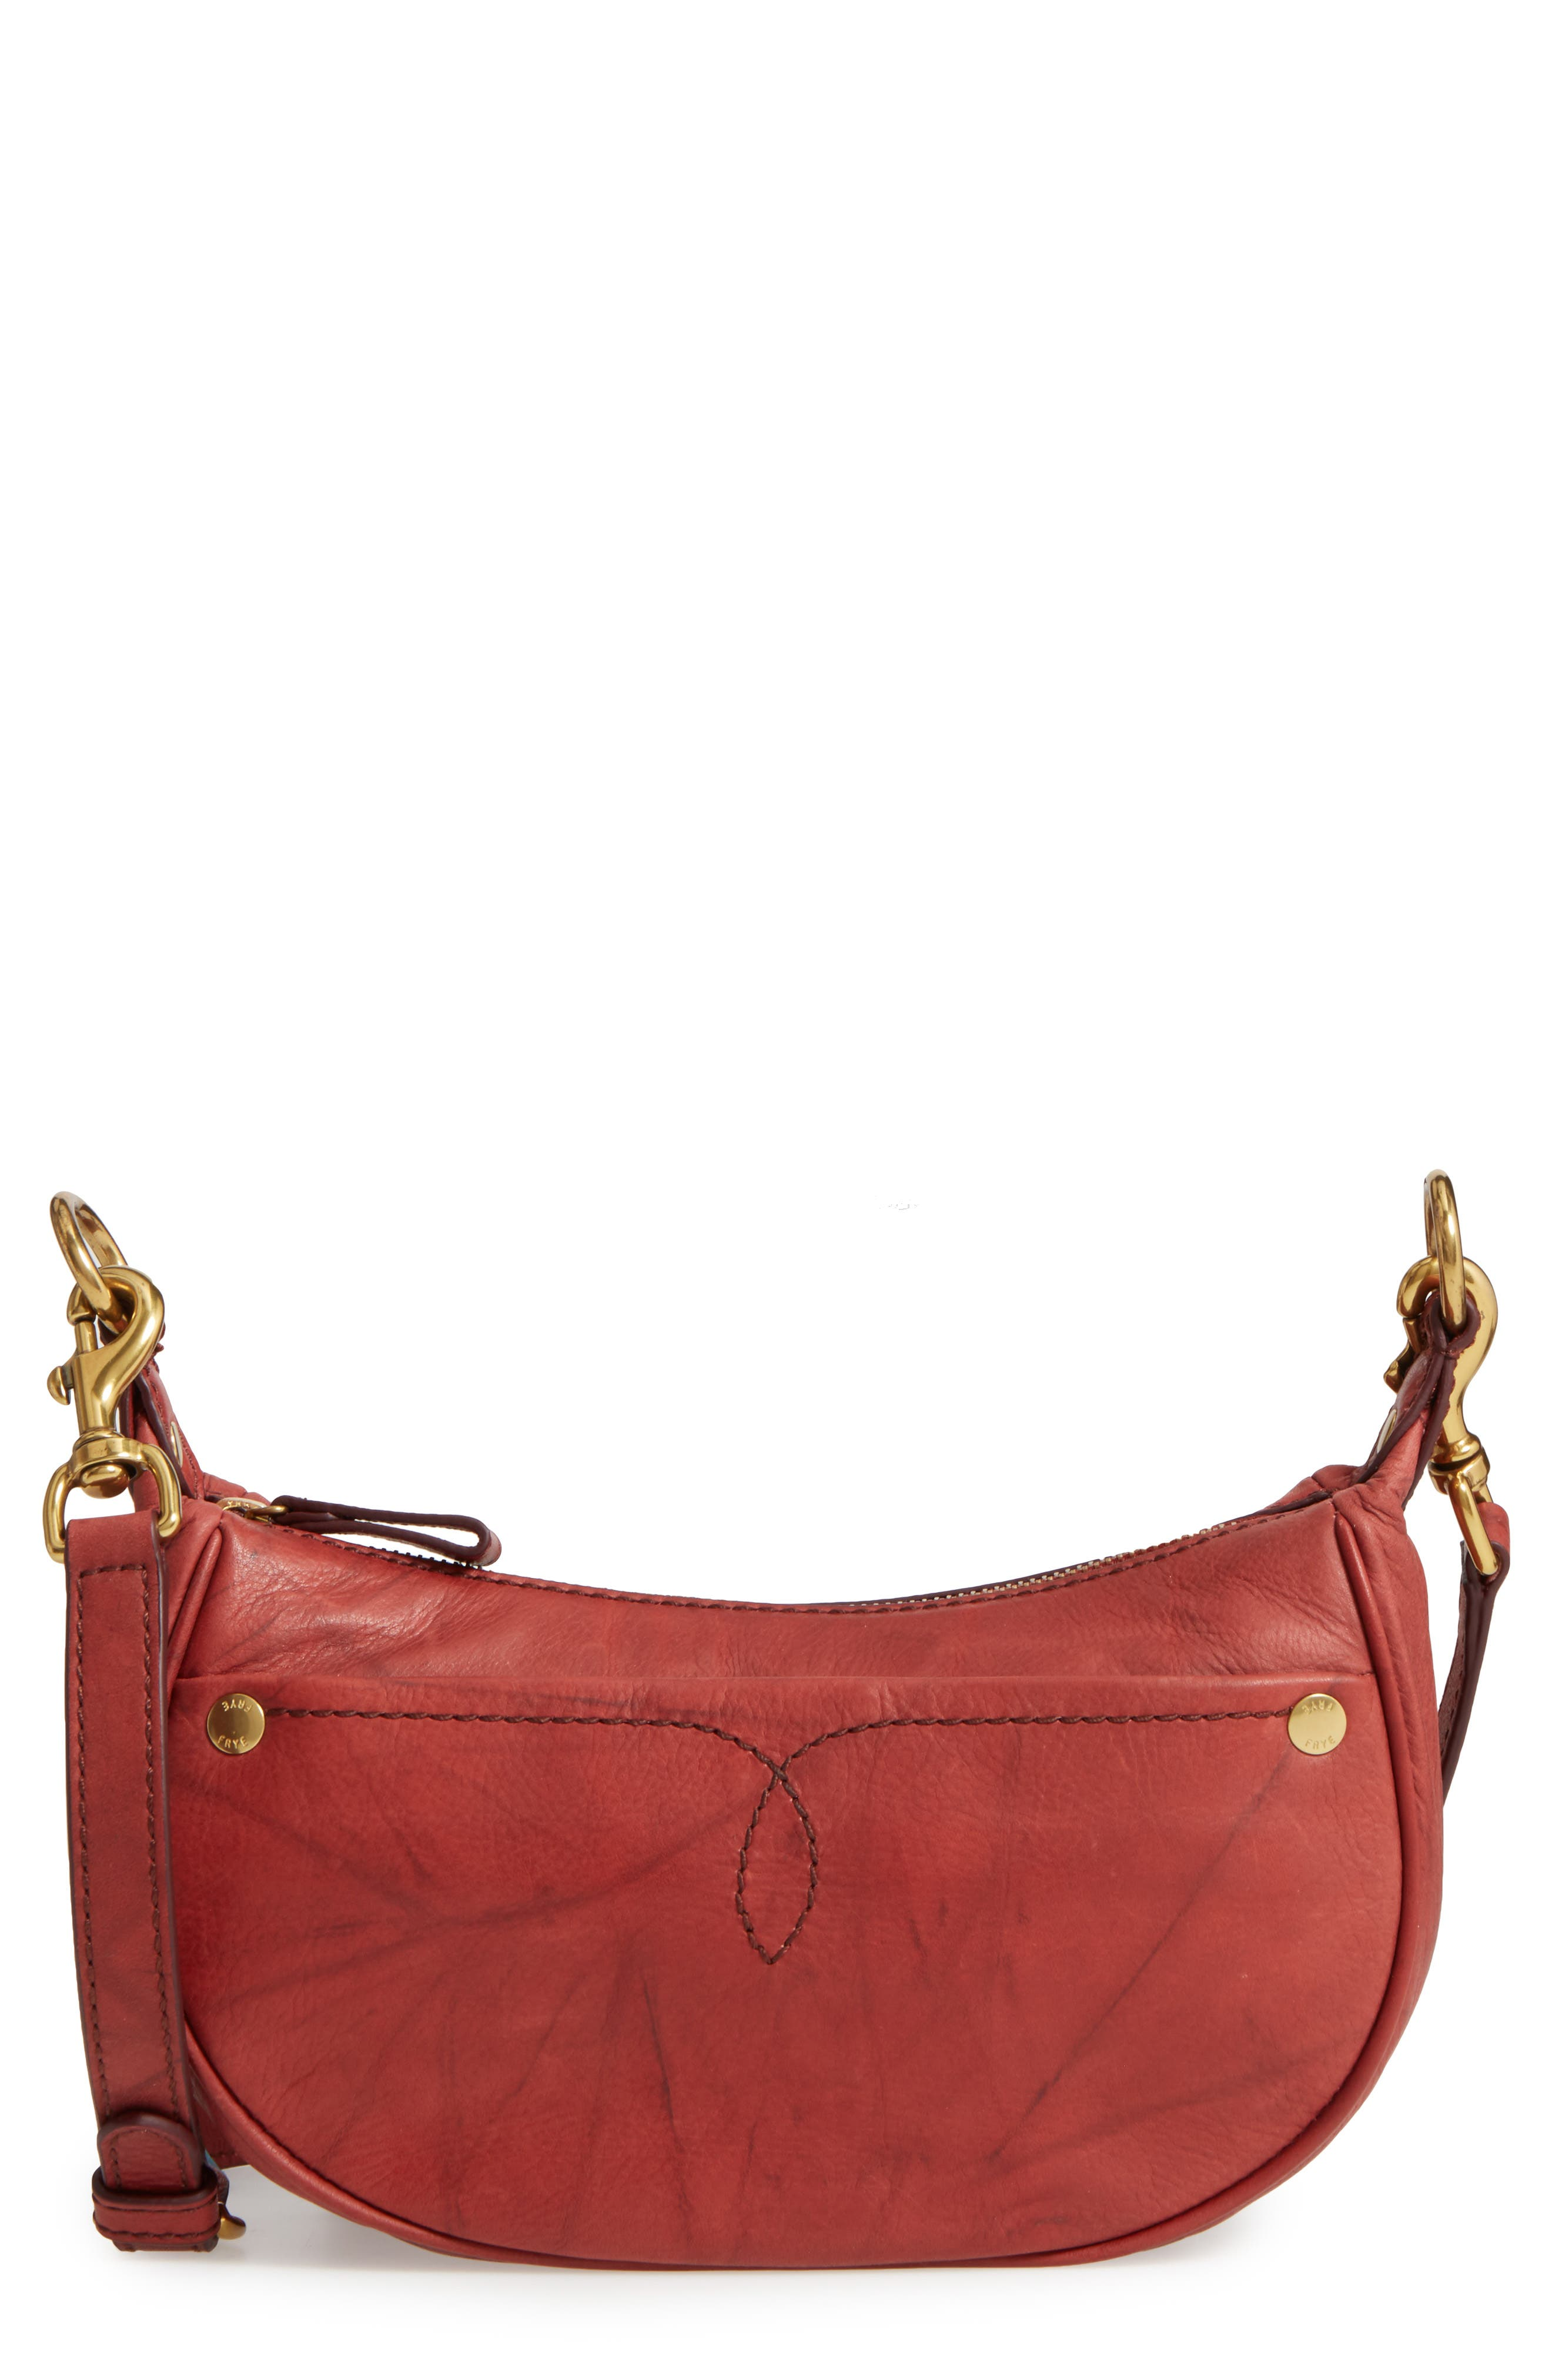 Frye Small Campus Leather Crossbody Bag